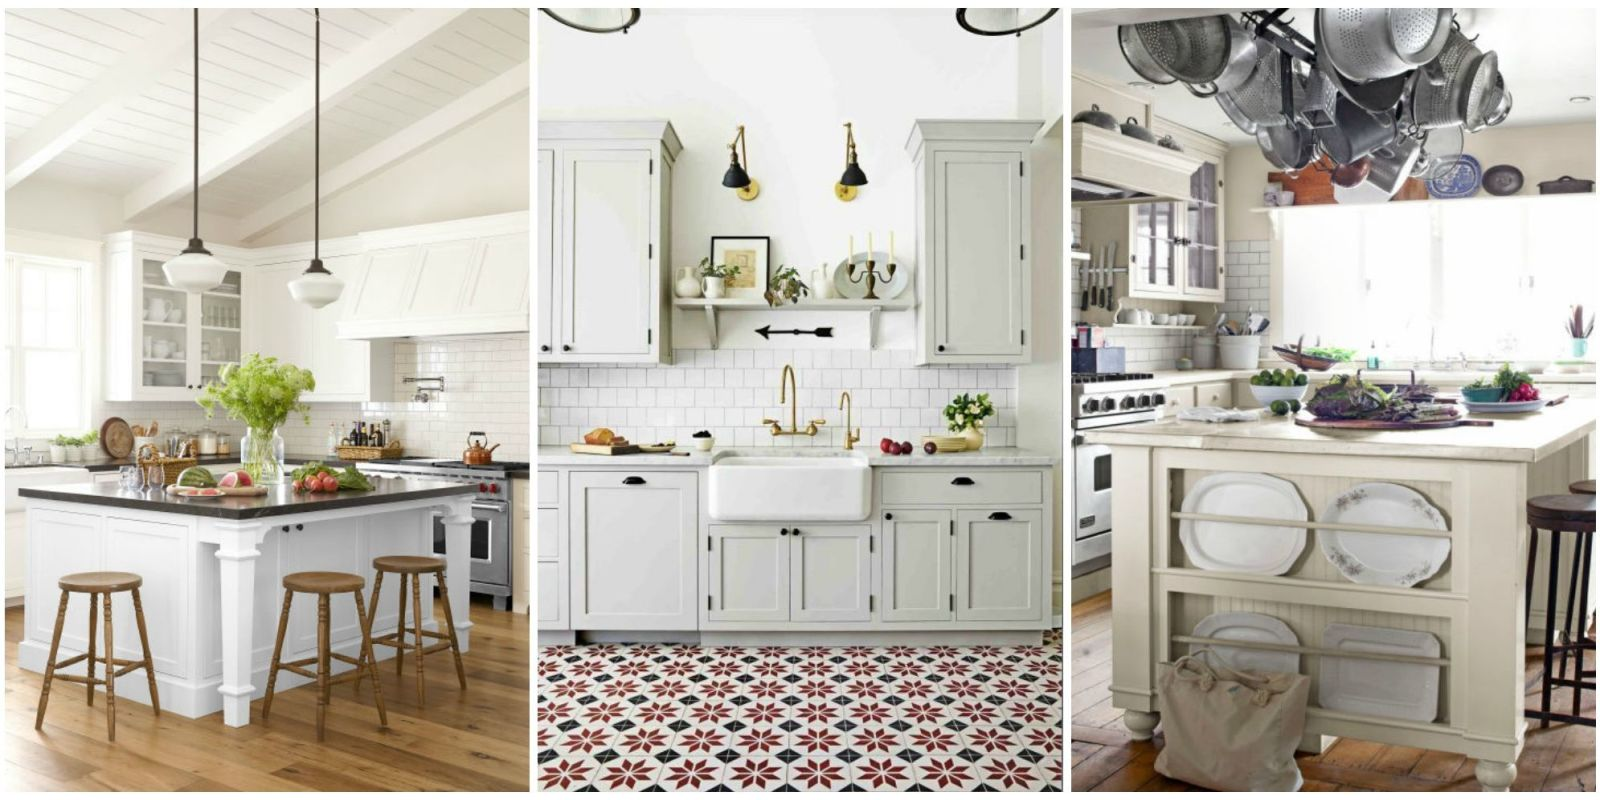 10 best white kitchen cabinet paint colors ideas for on best colors for kitchen walls id=19846